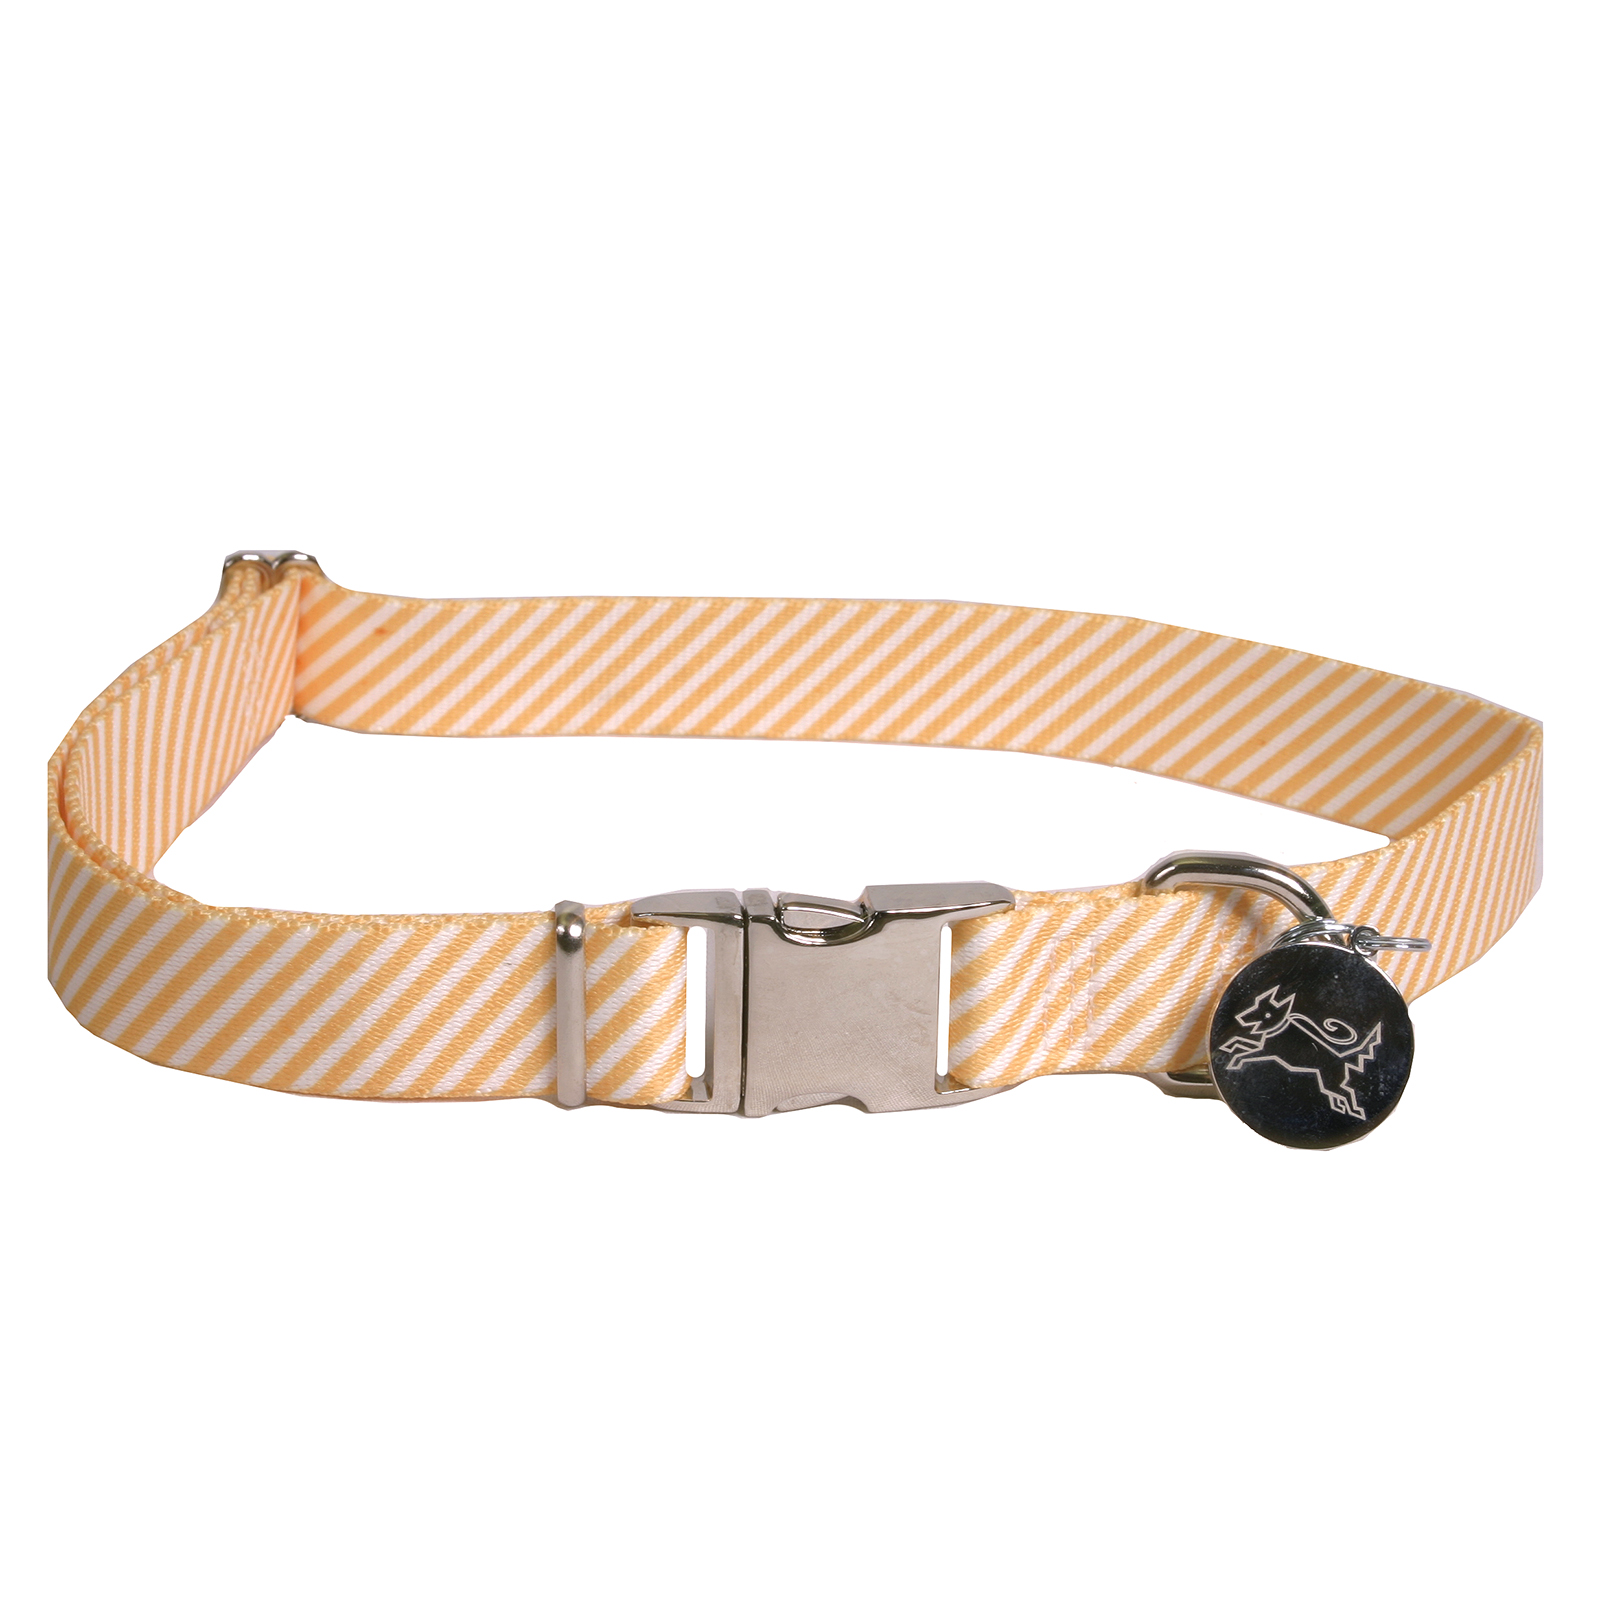 Southern Dawg: Seersucker Orange Premium Dog Collar